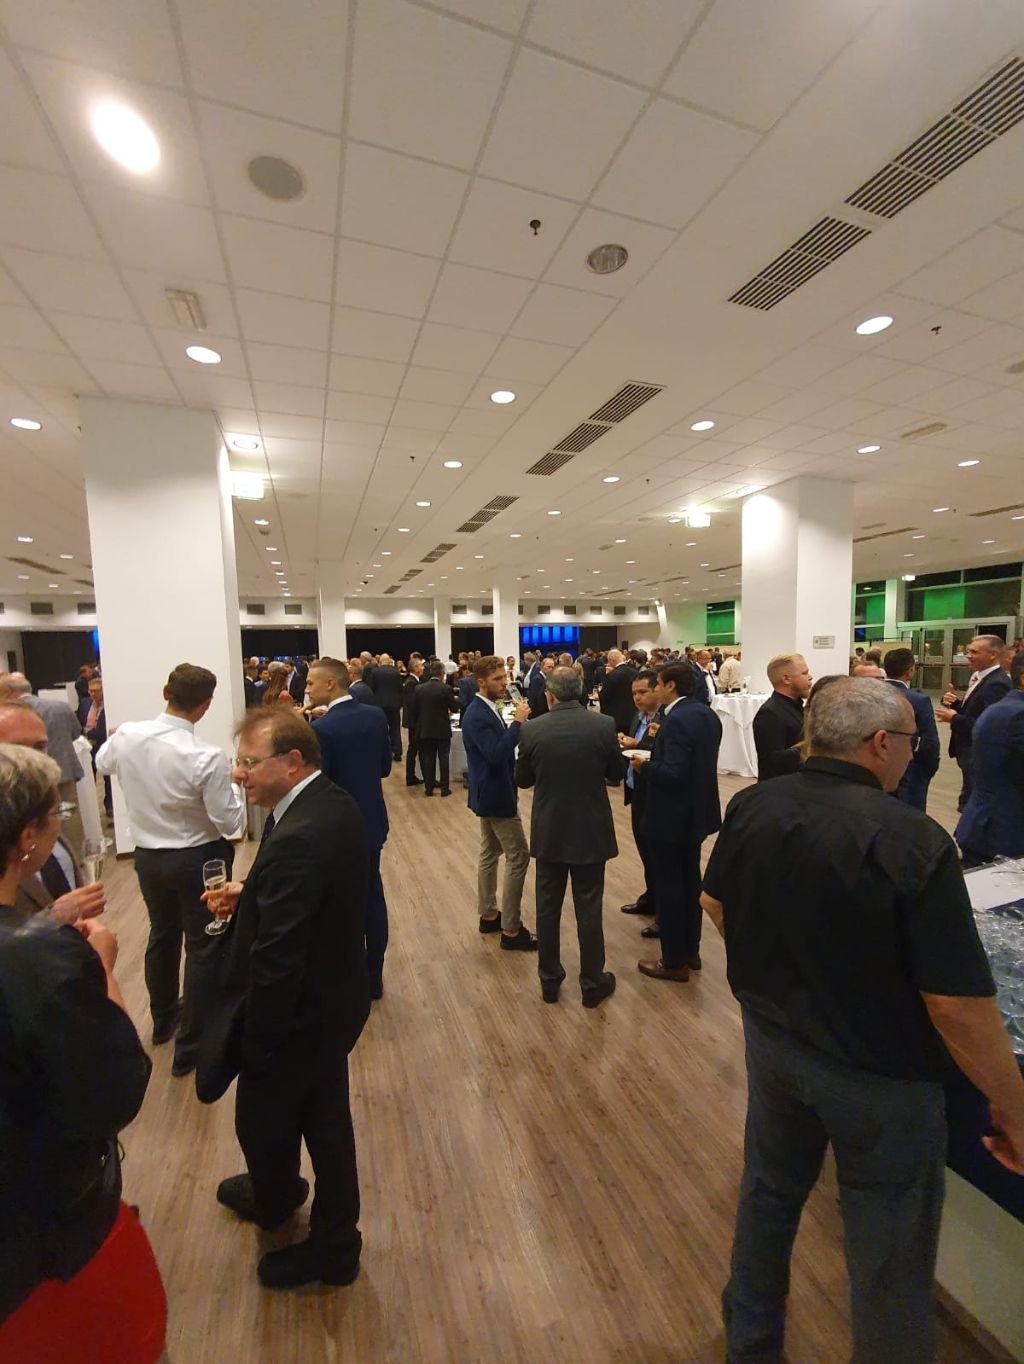 Meeting Robopac 2019 - foto 4.JPG Robopac dealer meeting 2019 - foto 4